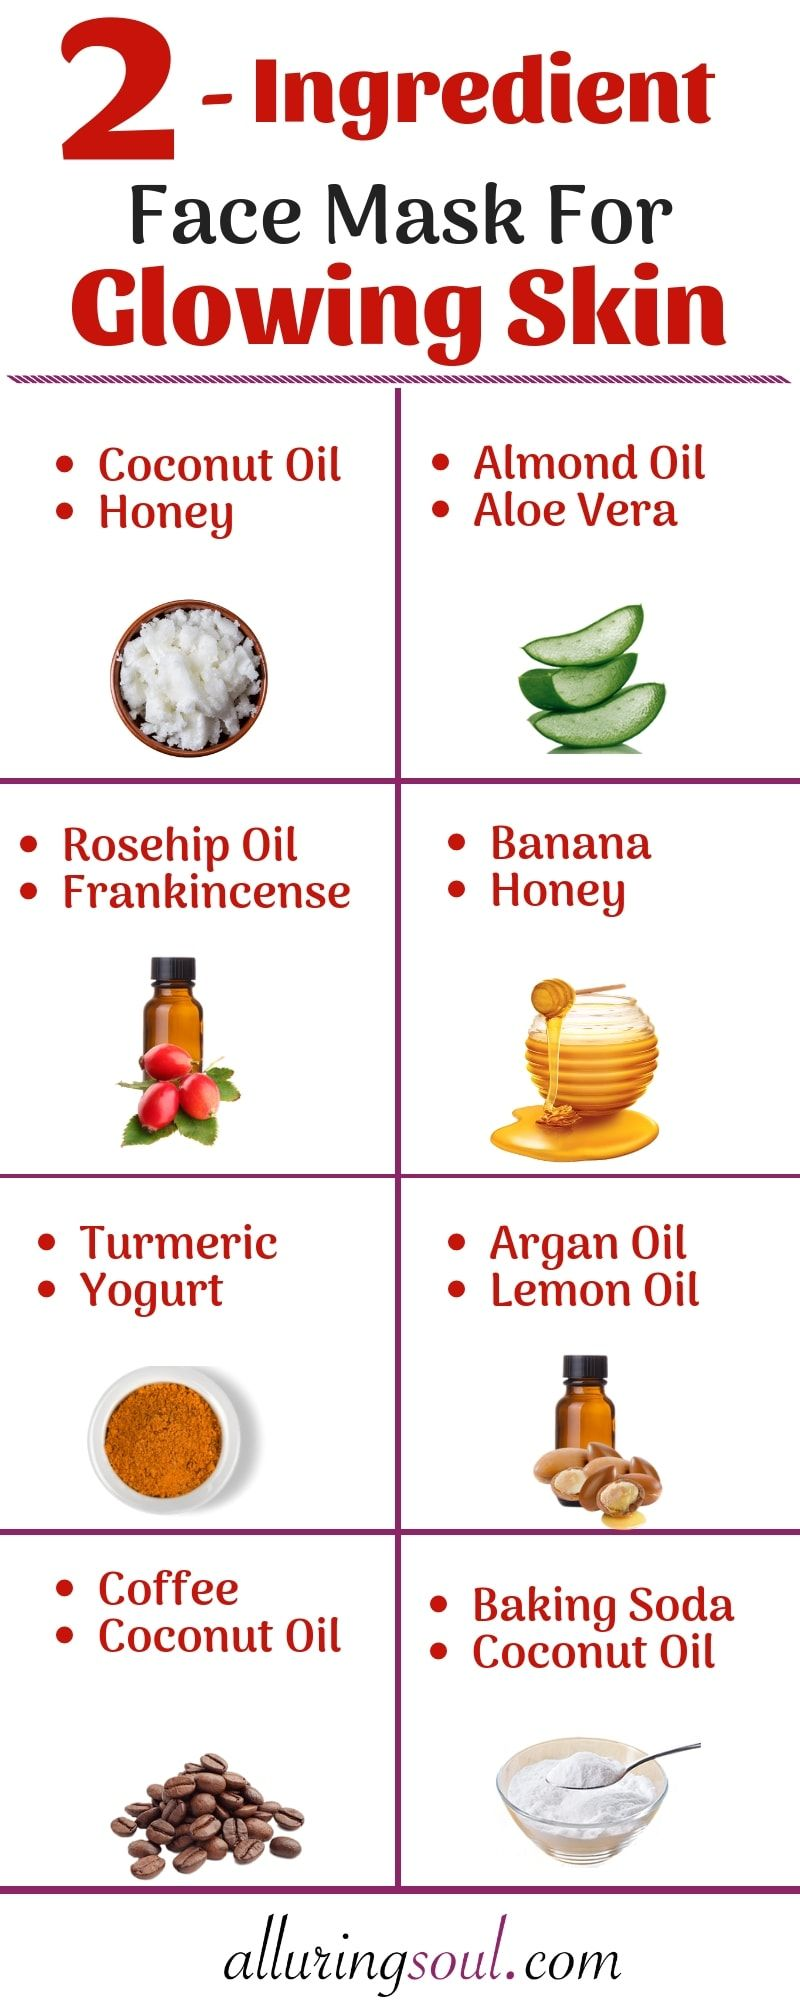 112 Effective 12 Ingredient Face Pack For Glowing Skin  Alluring